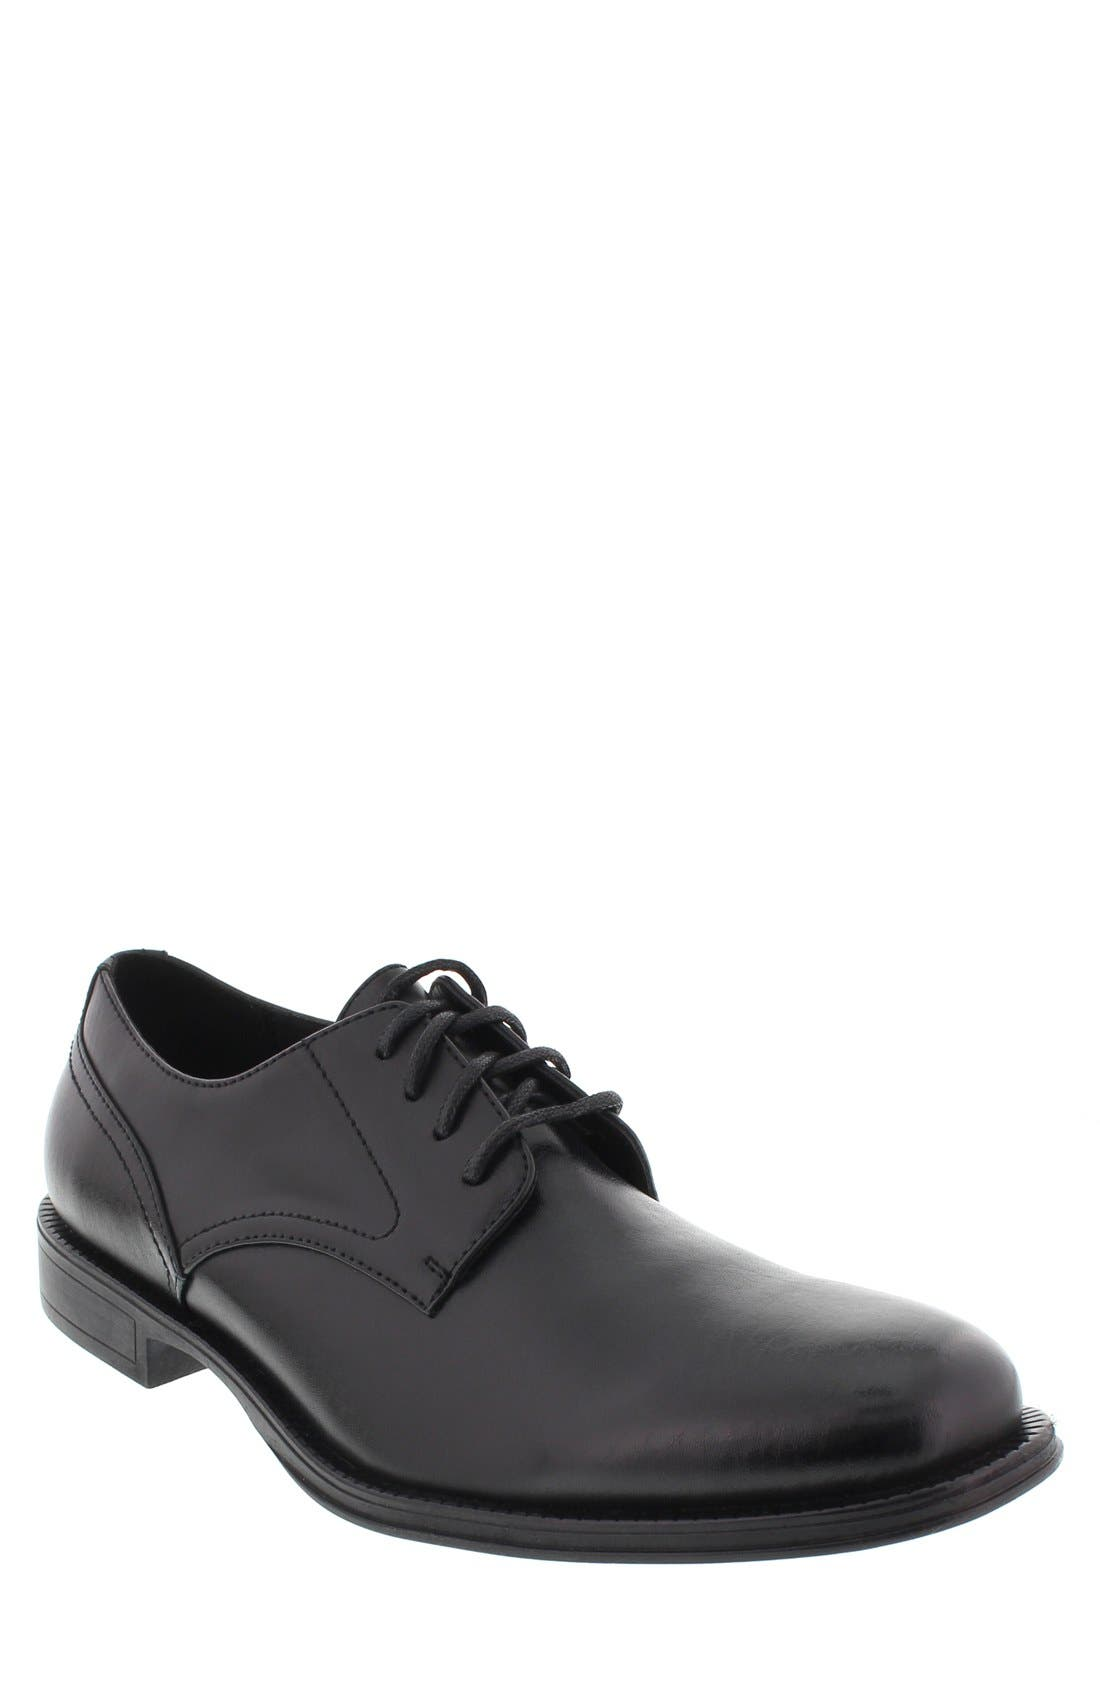 DEER STAGS 'Method' Leather Plain Toe Derby